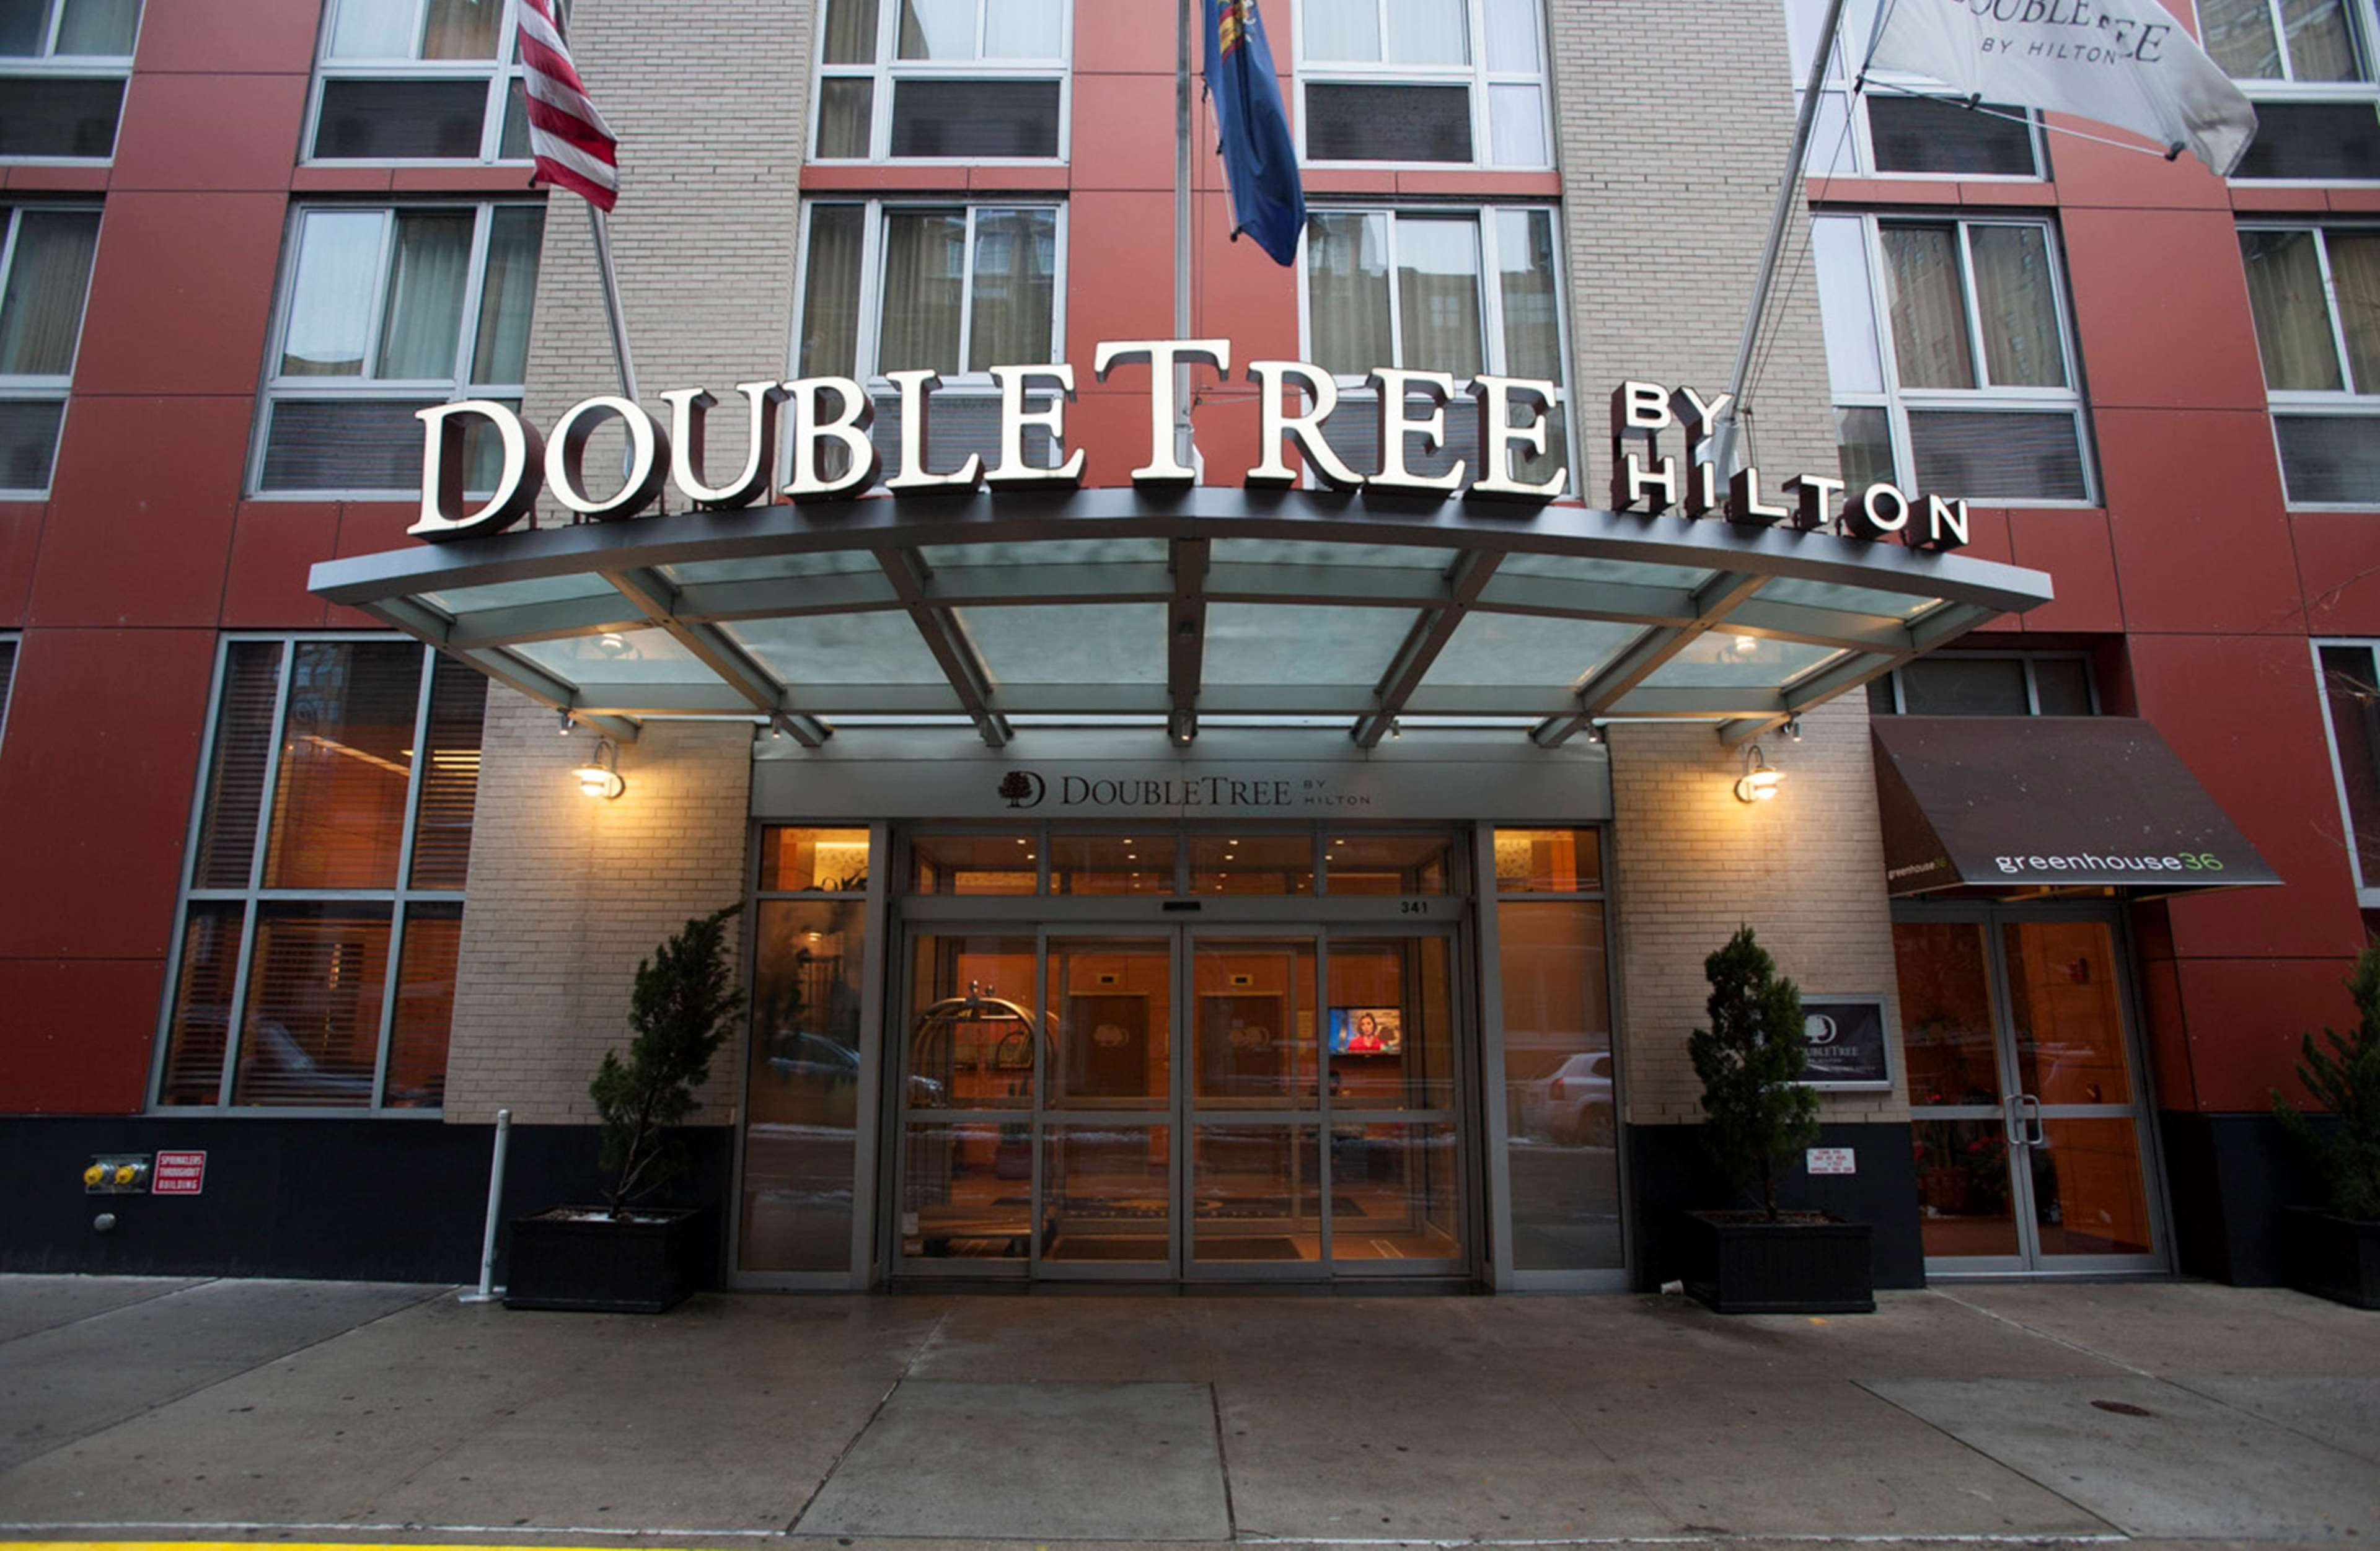 DoubleTree by Hilton Hotel New York - Times Square South image 0